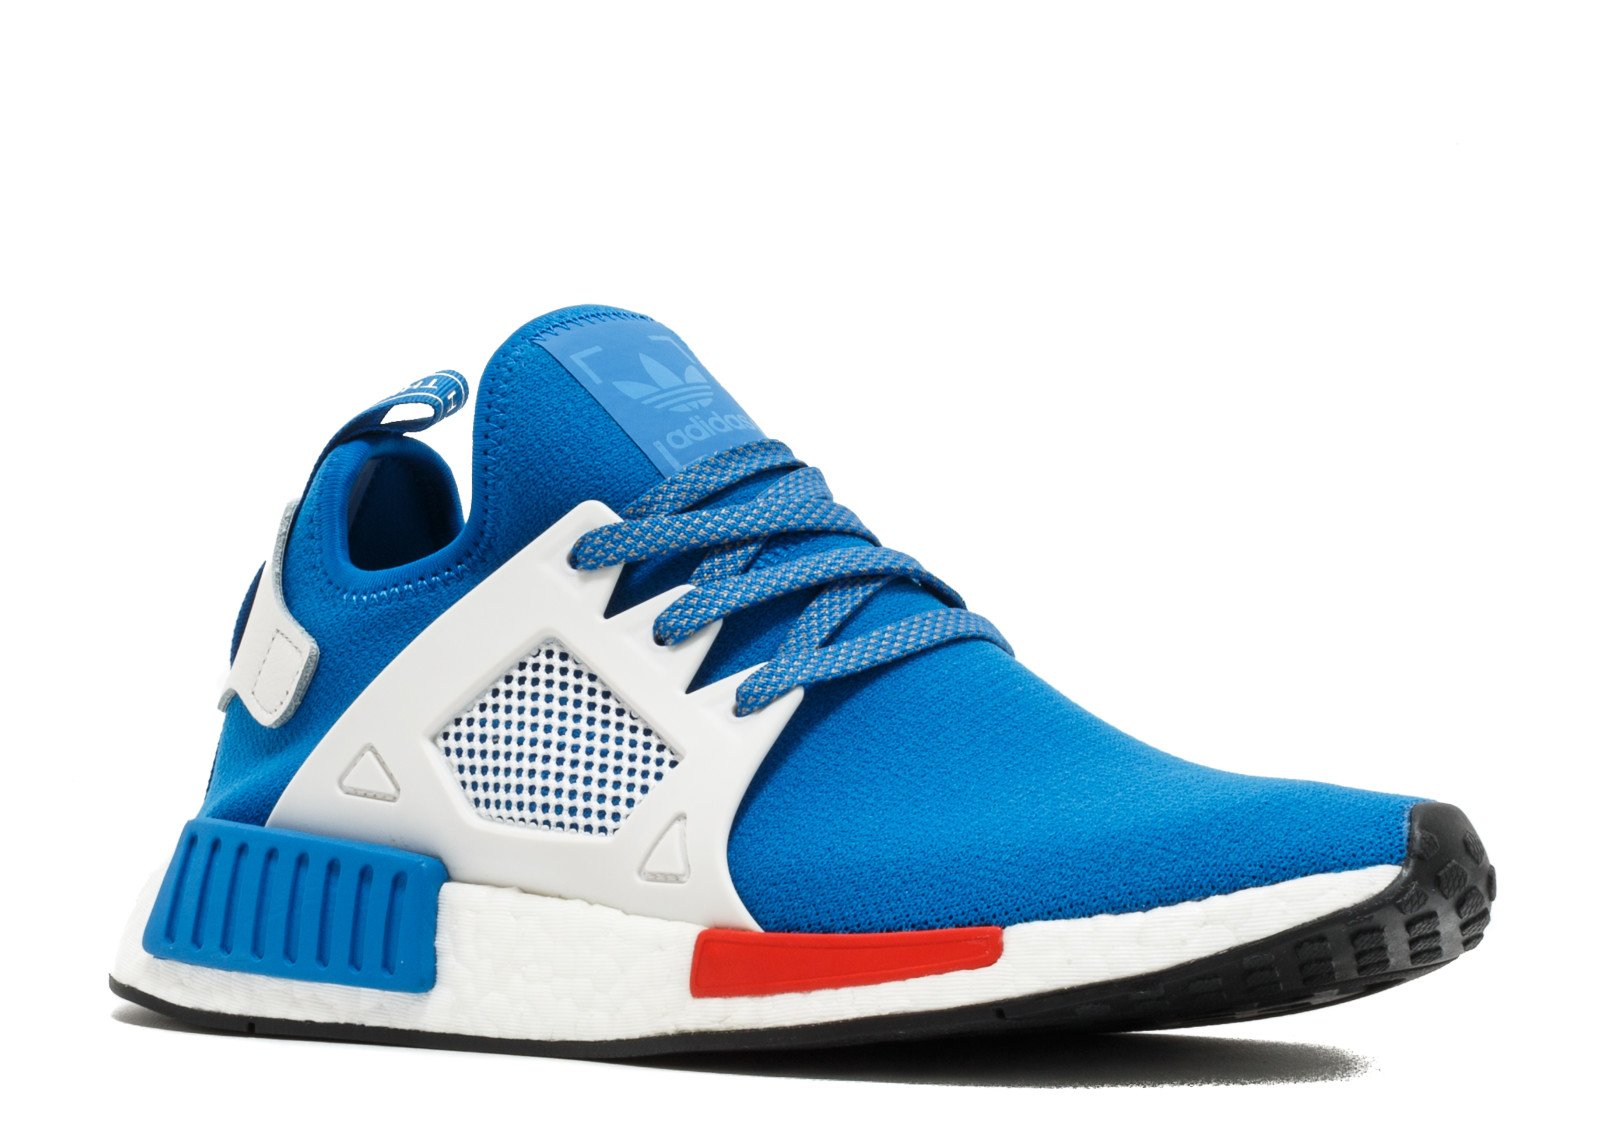 adidas Originals NMD_XR1 Mens Running Trainers Sneakers Shoes (US 8, Blue Red White CG3092)